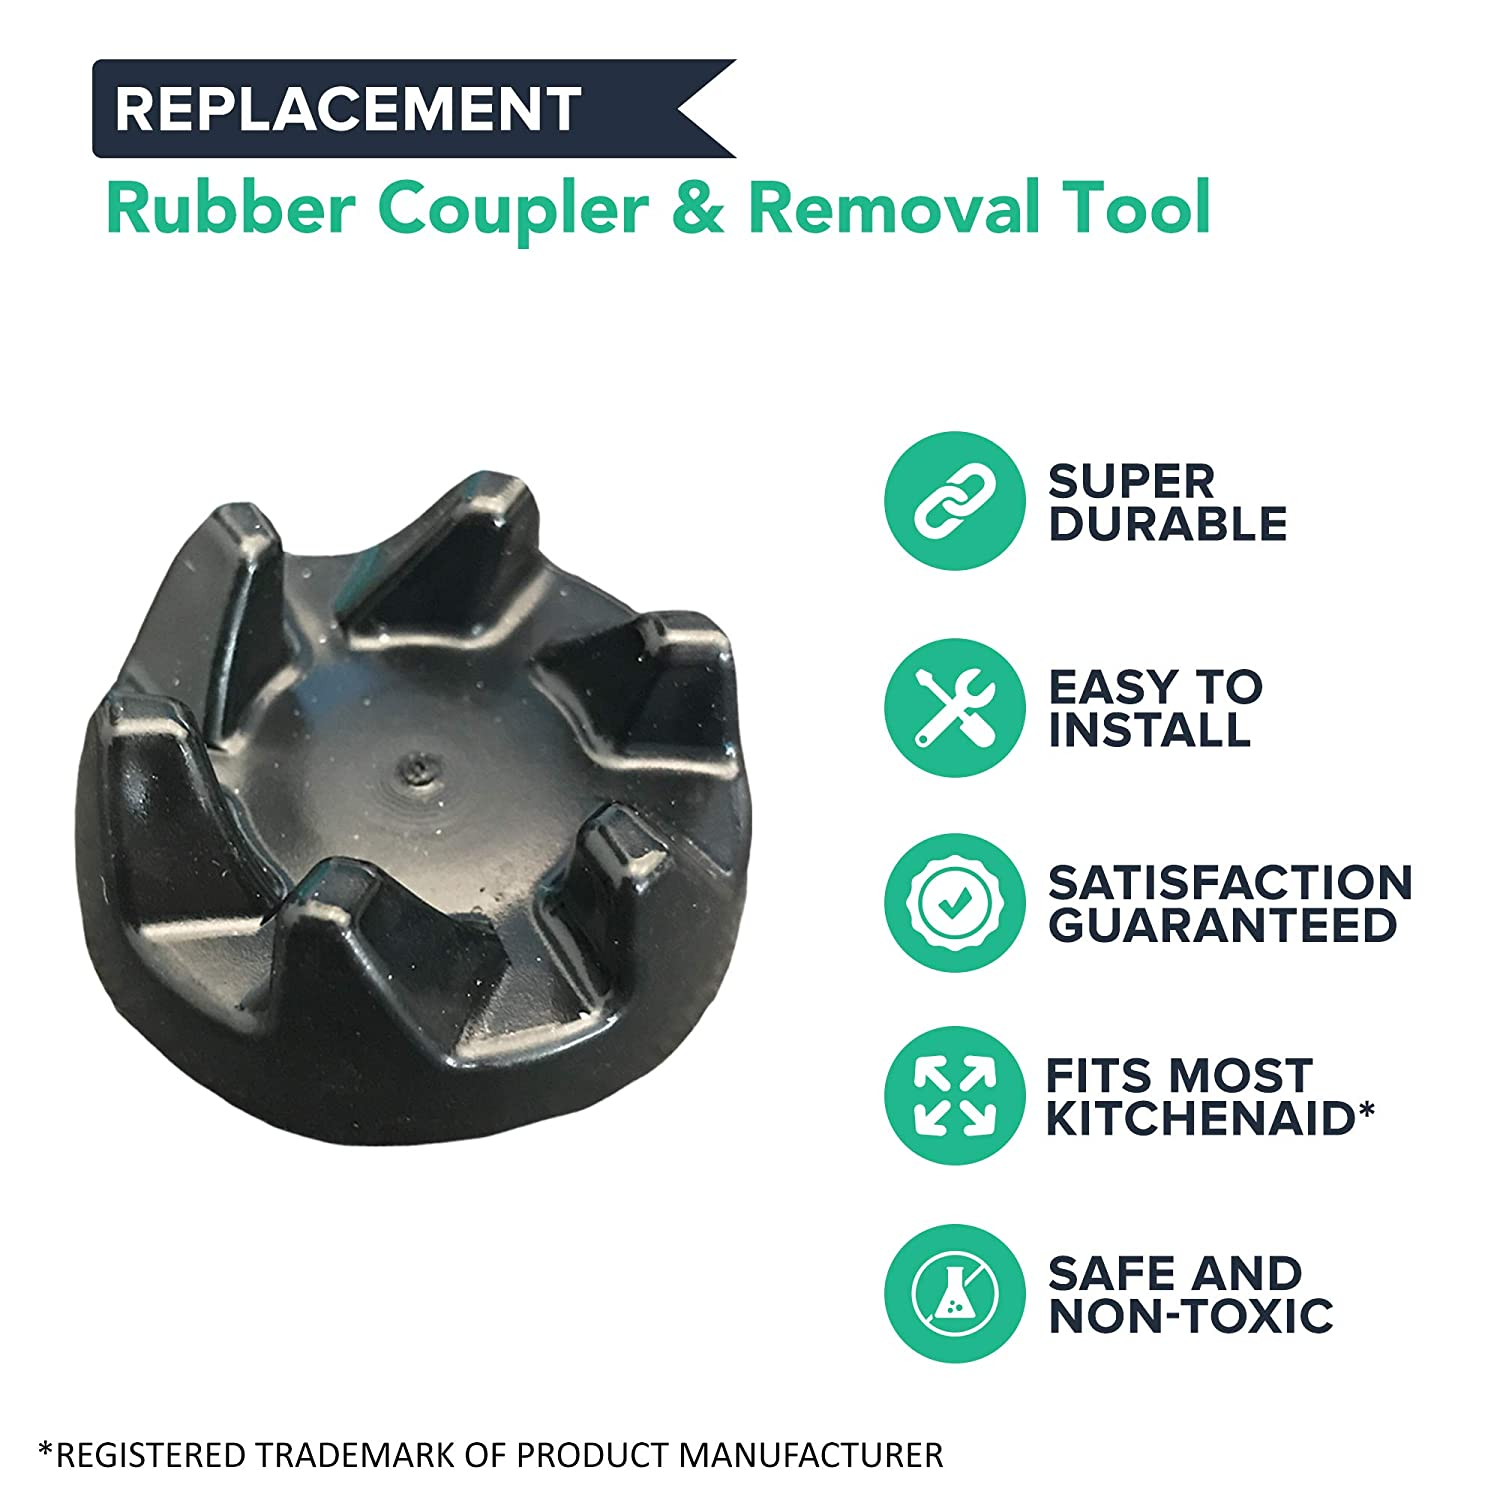 KSB3 /& KSB5 Think Crucial Replacements for KitchenAid Blender Rubber Coupler /& Removal Tool for Models KSB3 Compatible With Part # 9704230